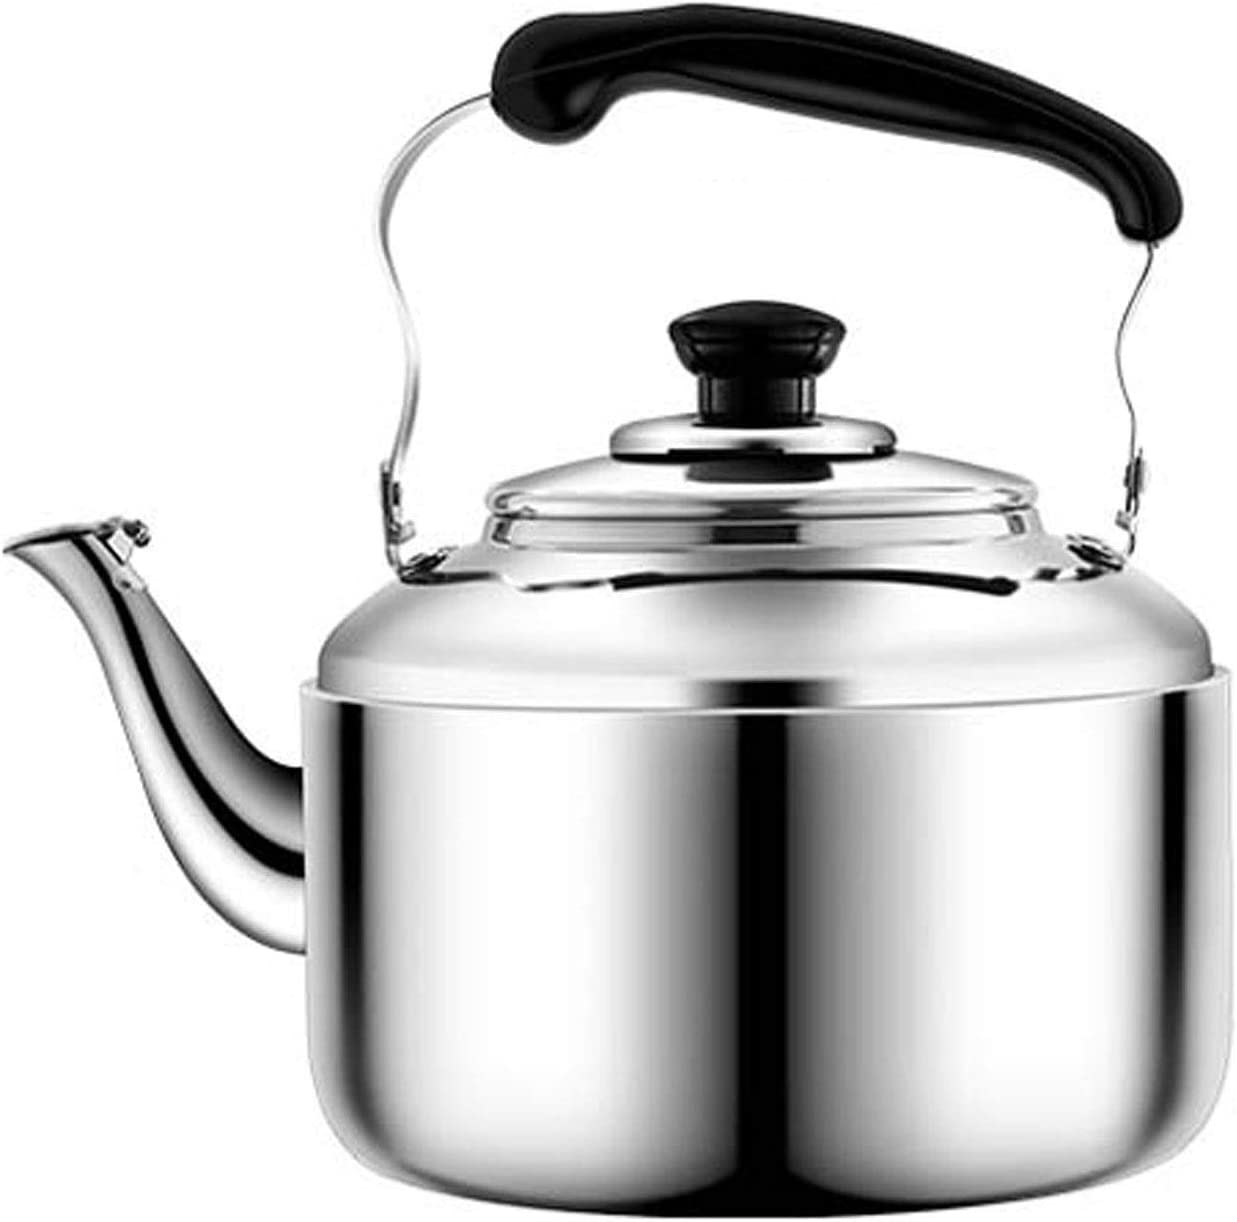 LIU Whistling Sales Outlet ☆ Free Shipping Kettles Stove Whistle Teap Stainless Teapot Steel